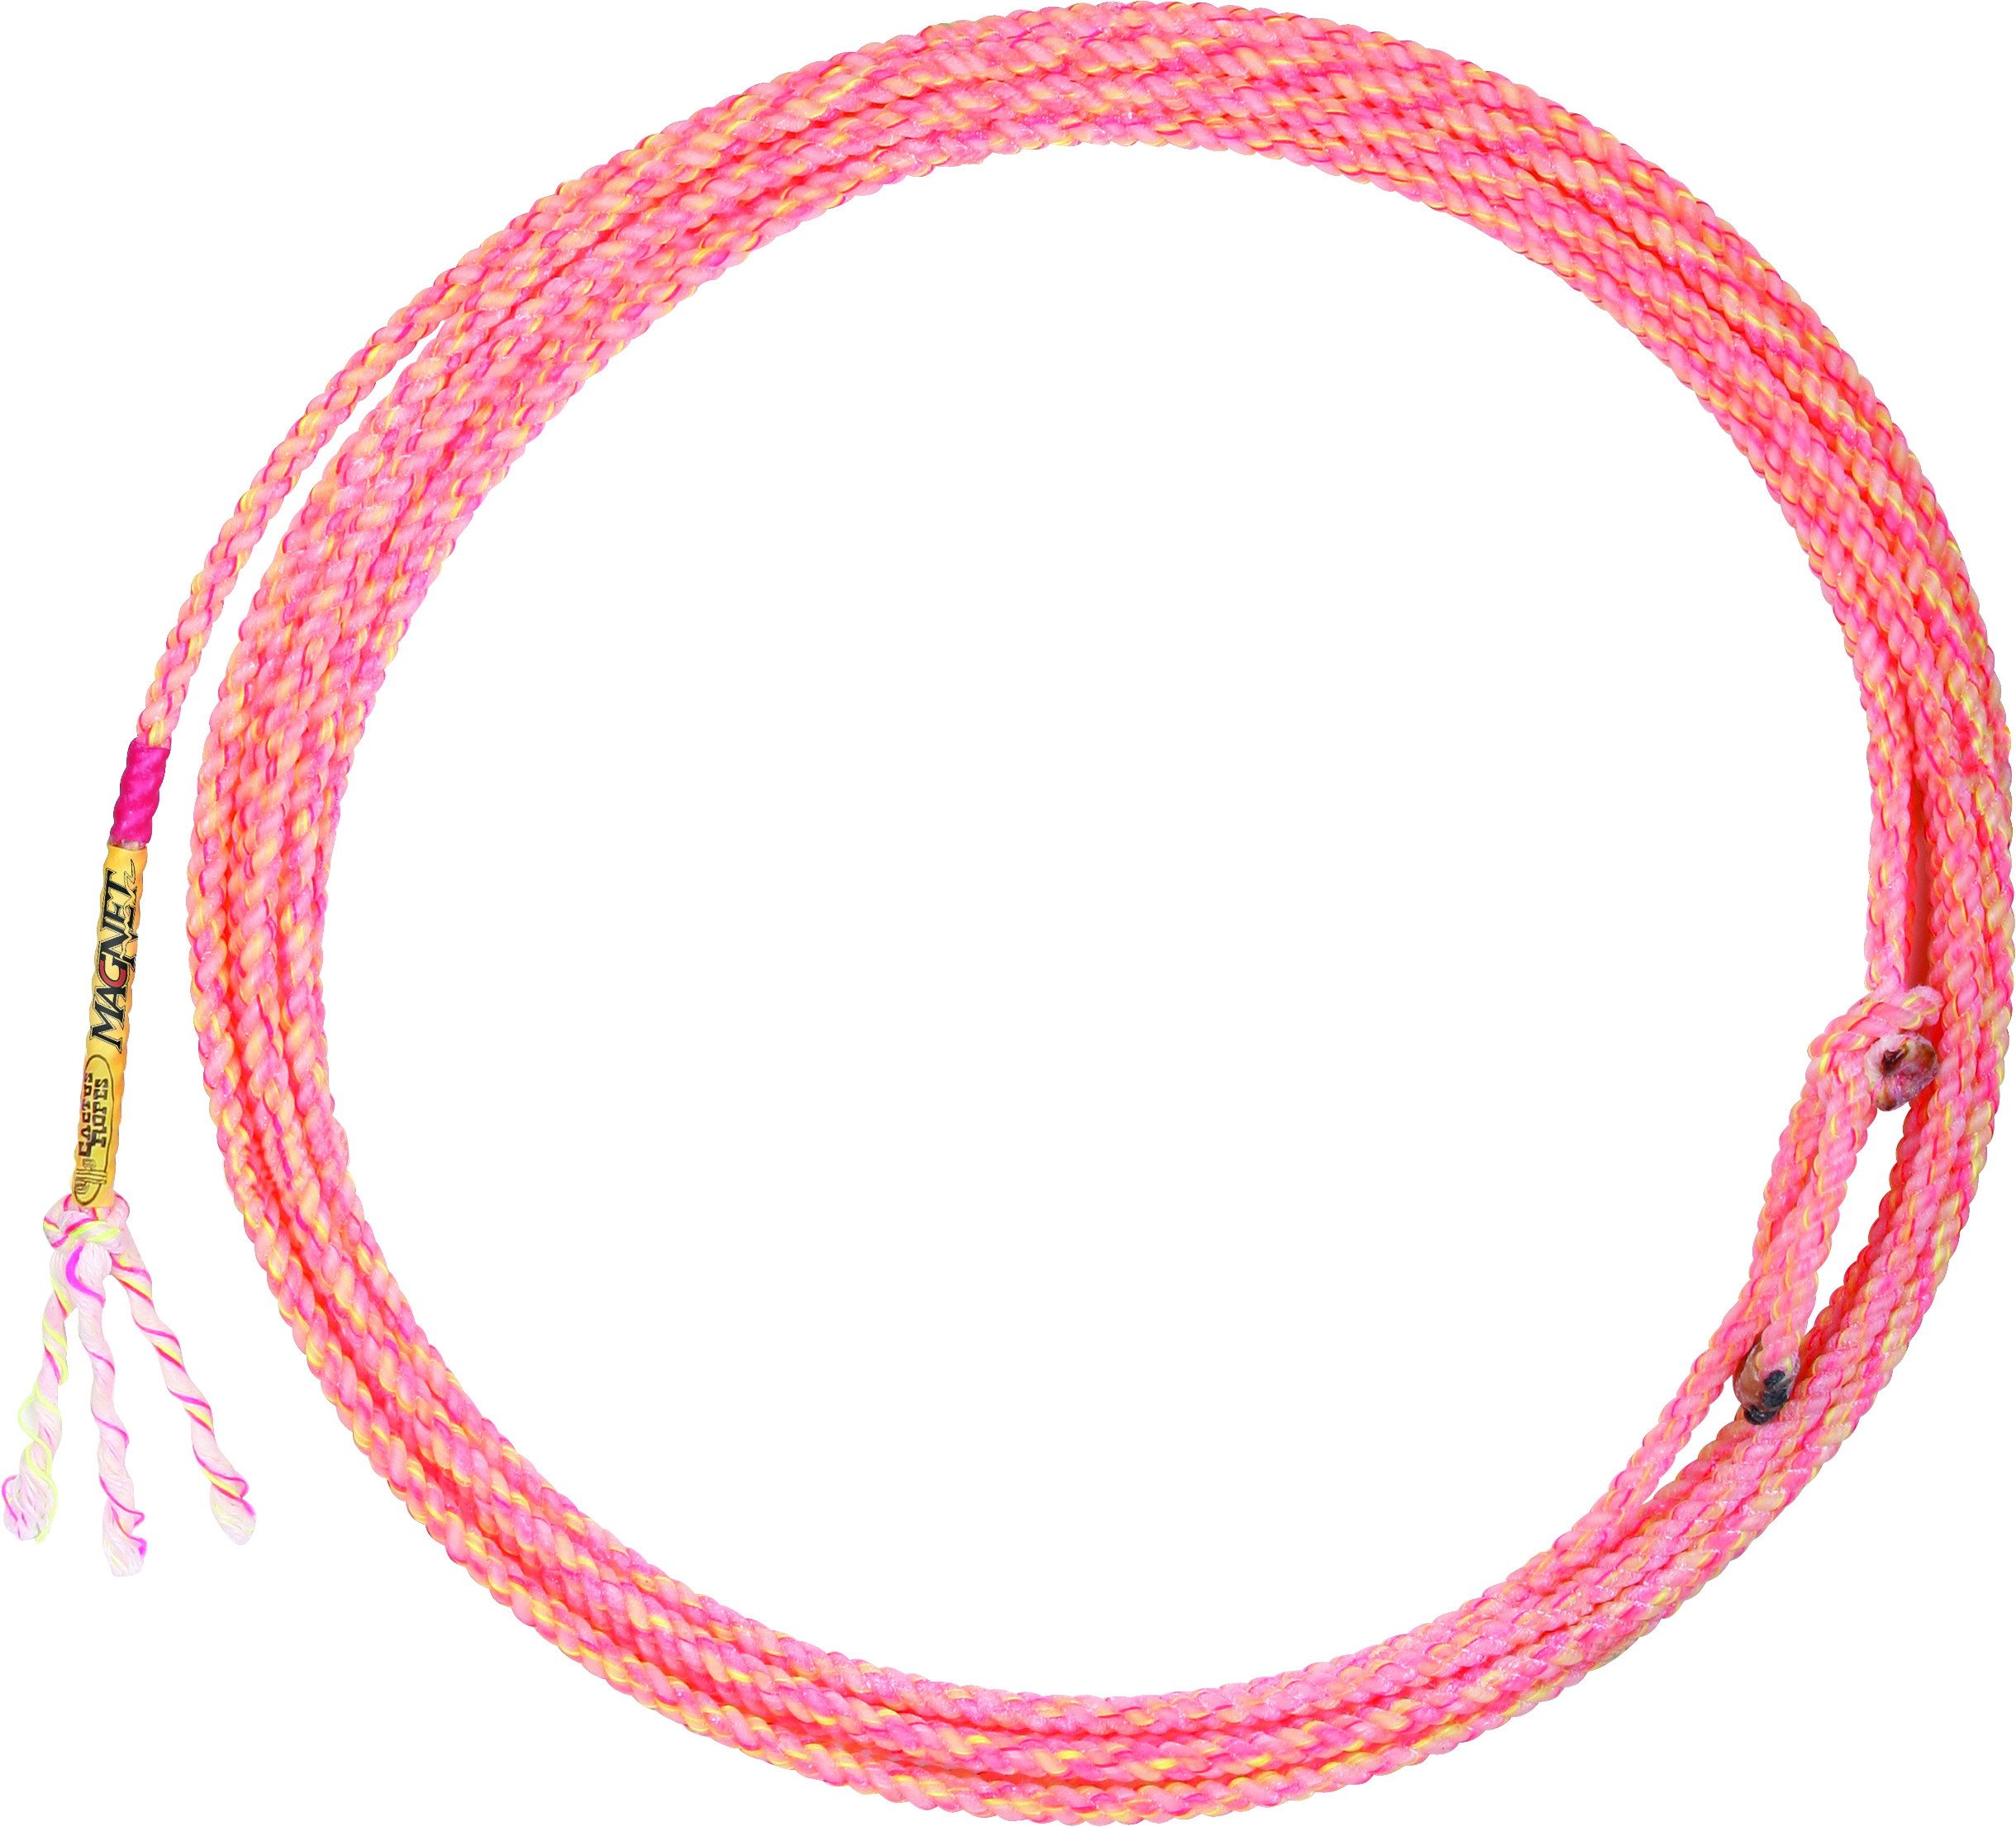 Murdoch's – Cactus Ropes - Magnet Head Rope